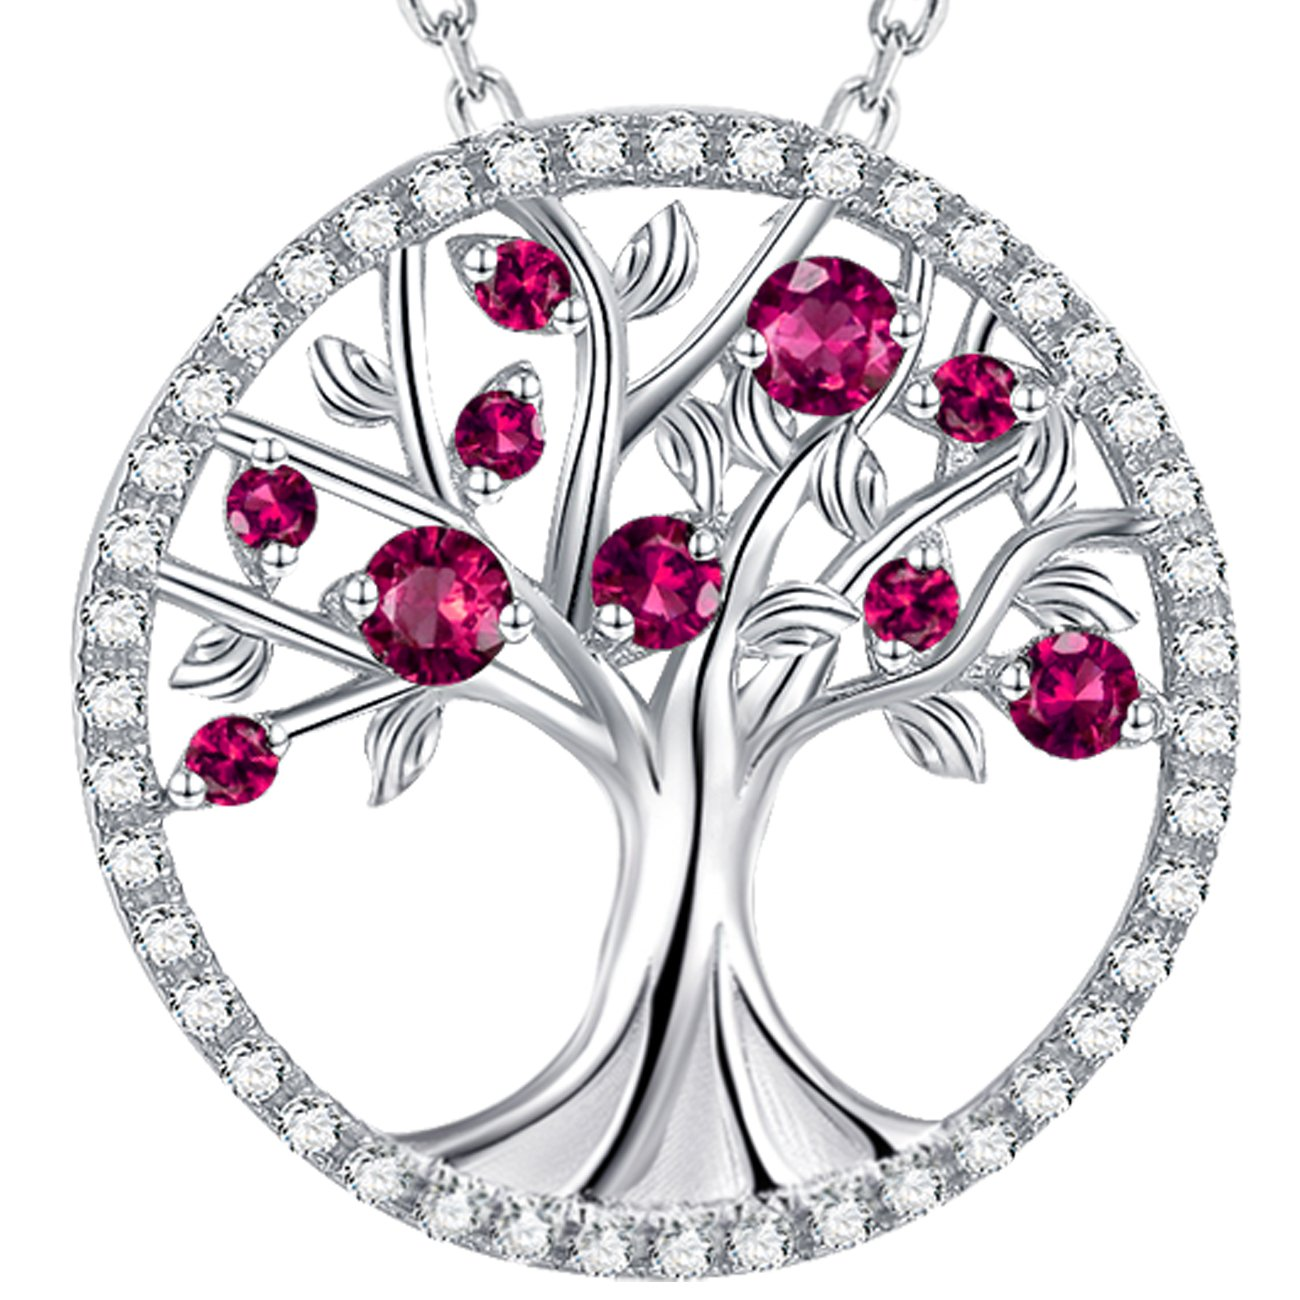 July Birthstone Created Ruby Necklace The Tree of Life Pendant Jewelry Birthday Anniversary Gift for her Wife Family Sterling Silver